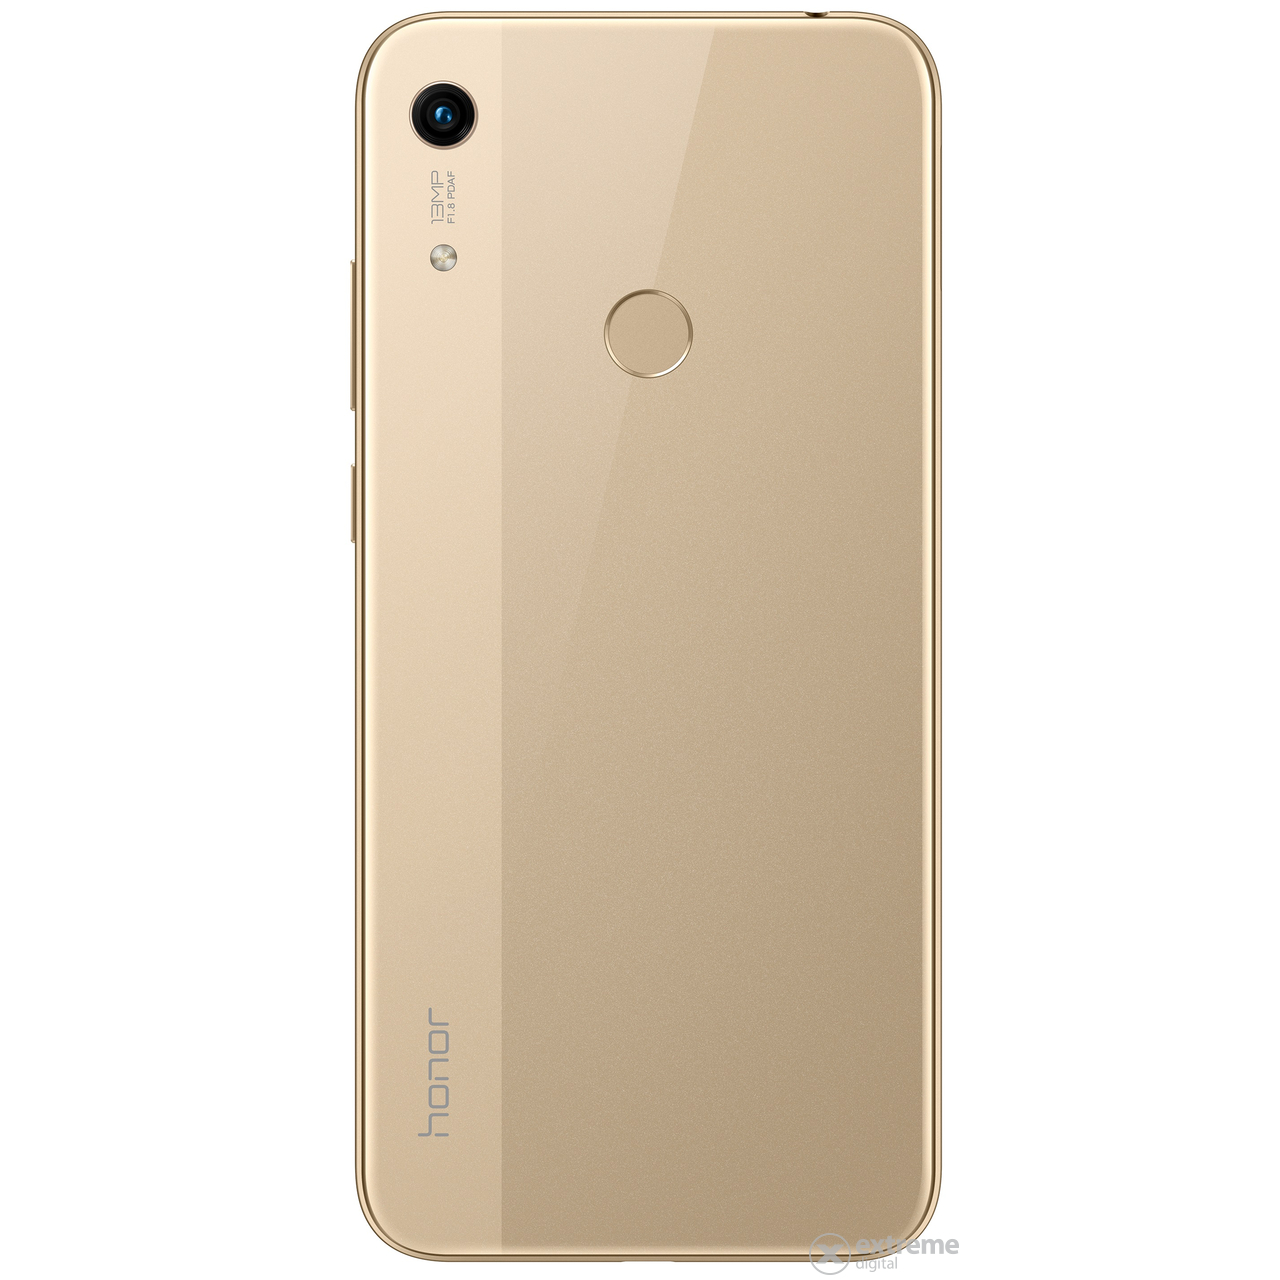 Honor 8A 3GB/32GB Dual SIM pametni telefon, Gold (Android)